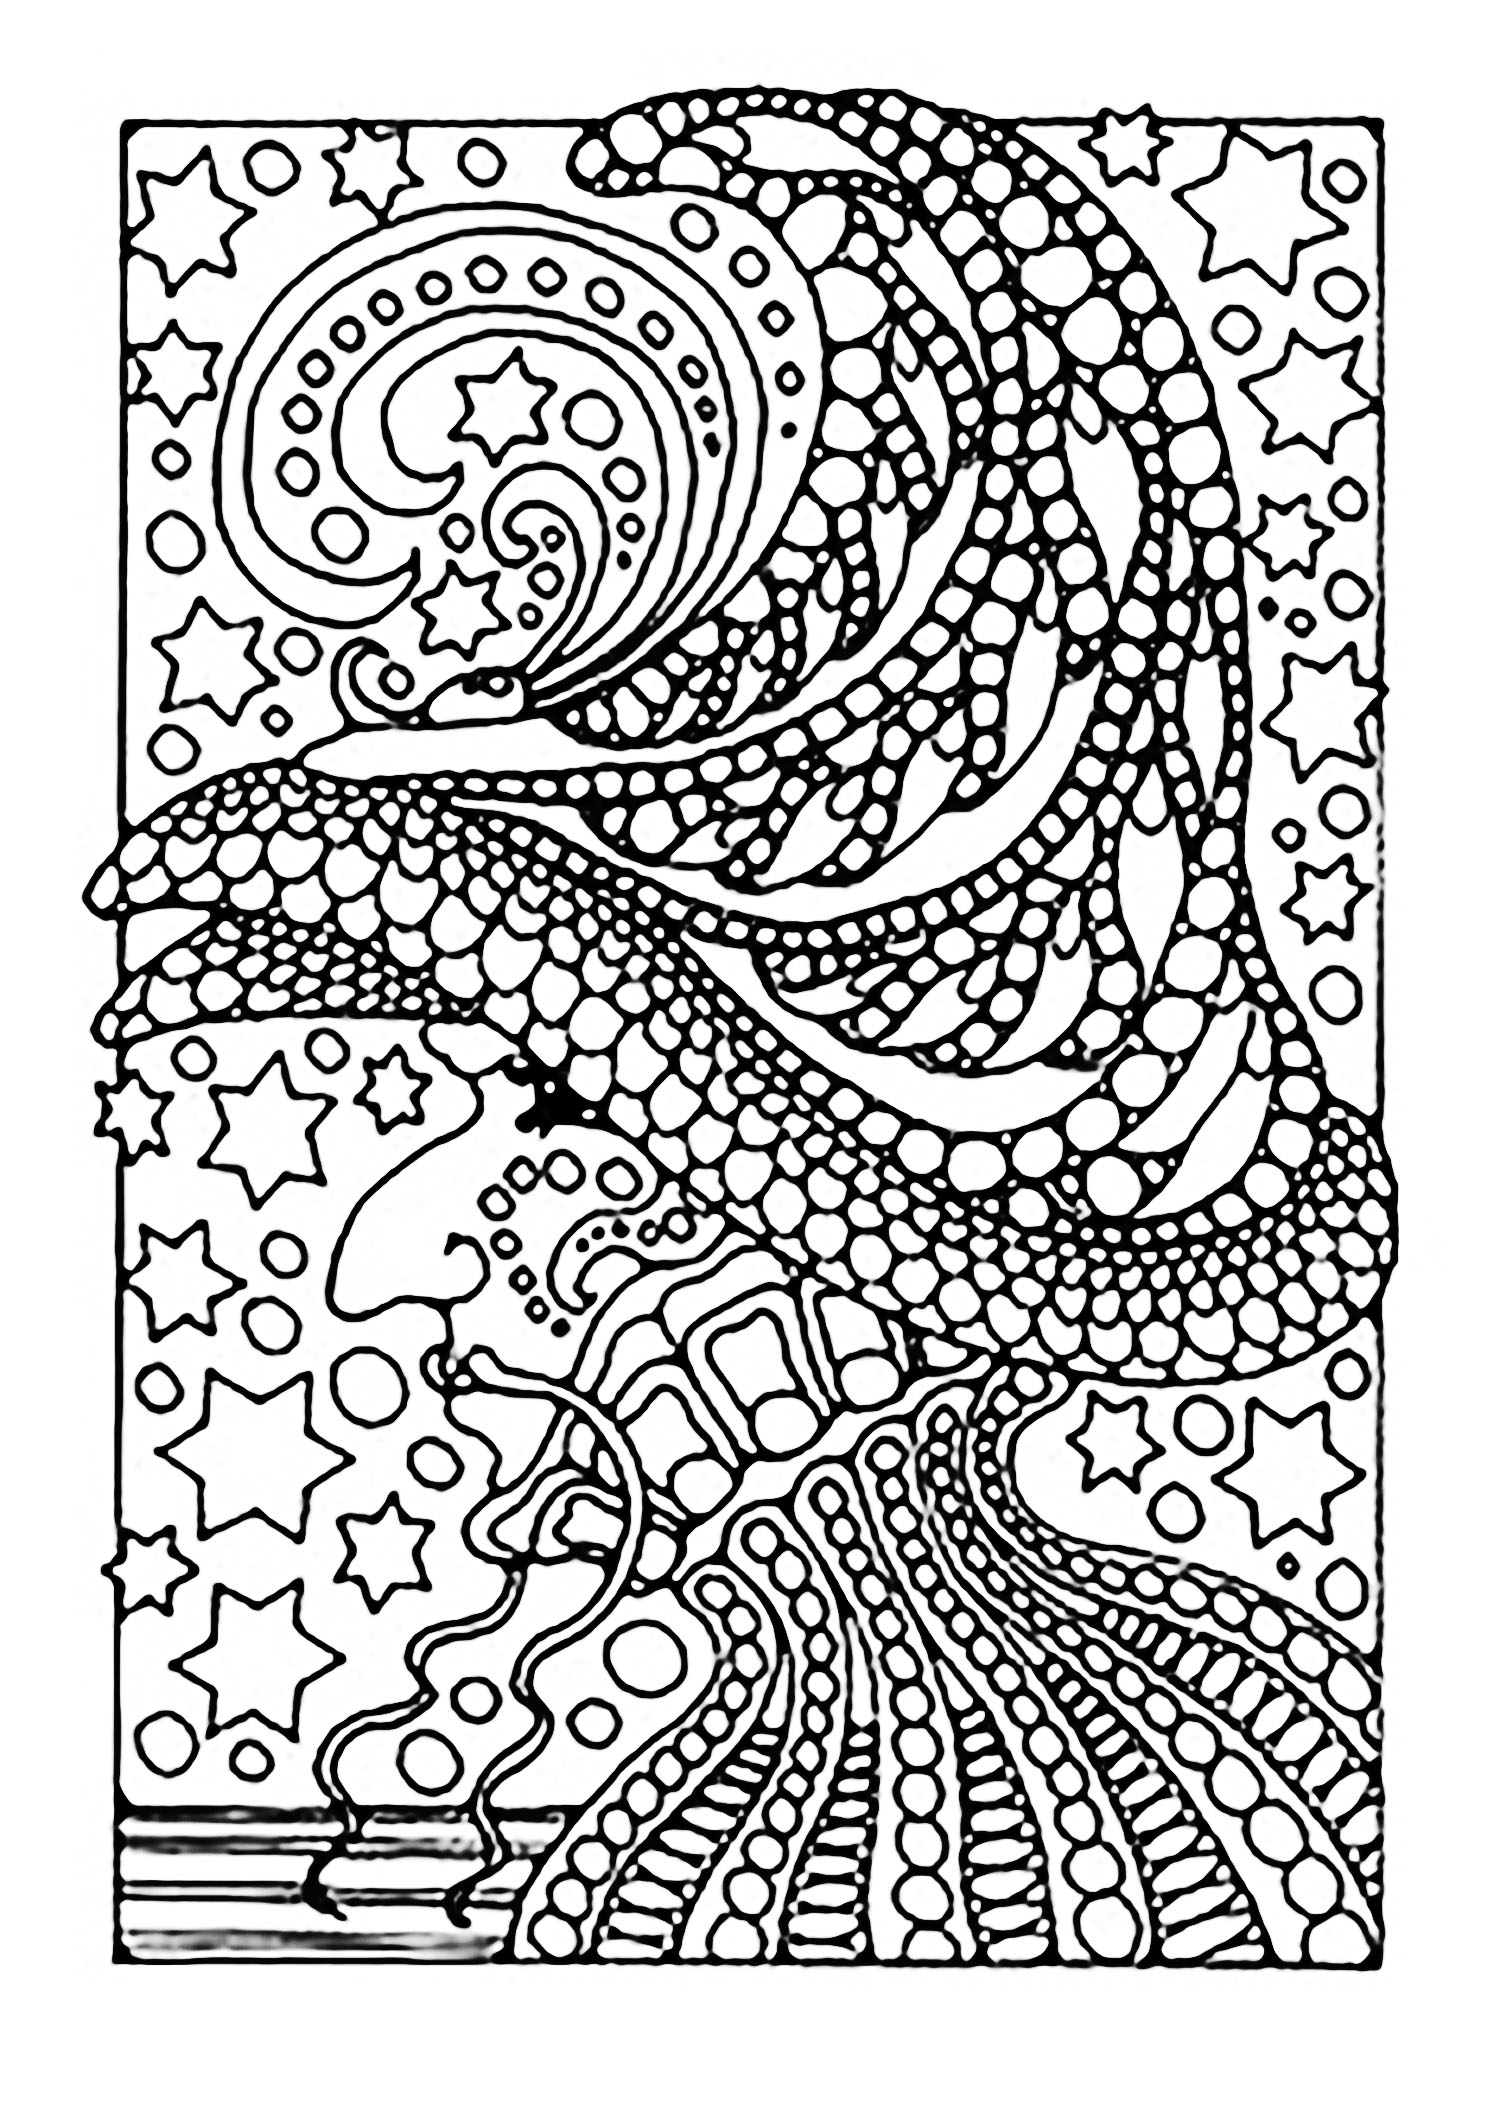 coloring halloween doodle pages 40 free printable halloween coloring pages for kids coloring doodle halloween pages